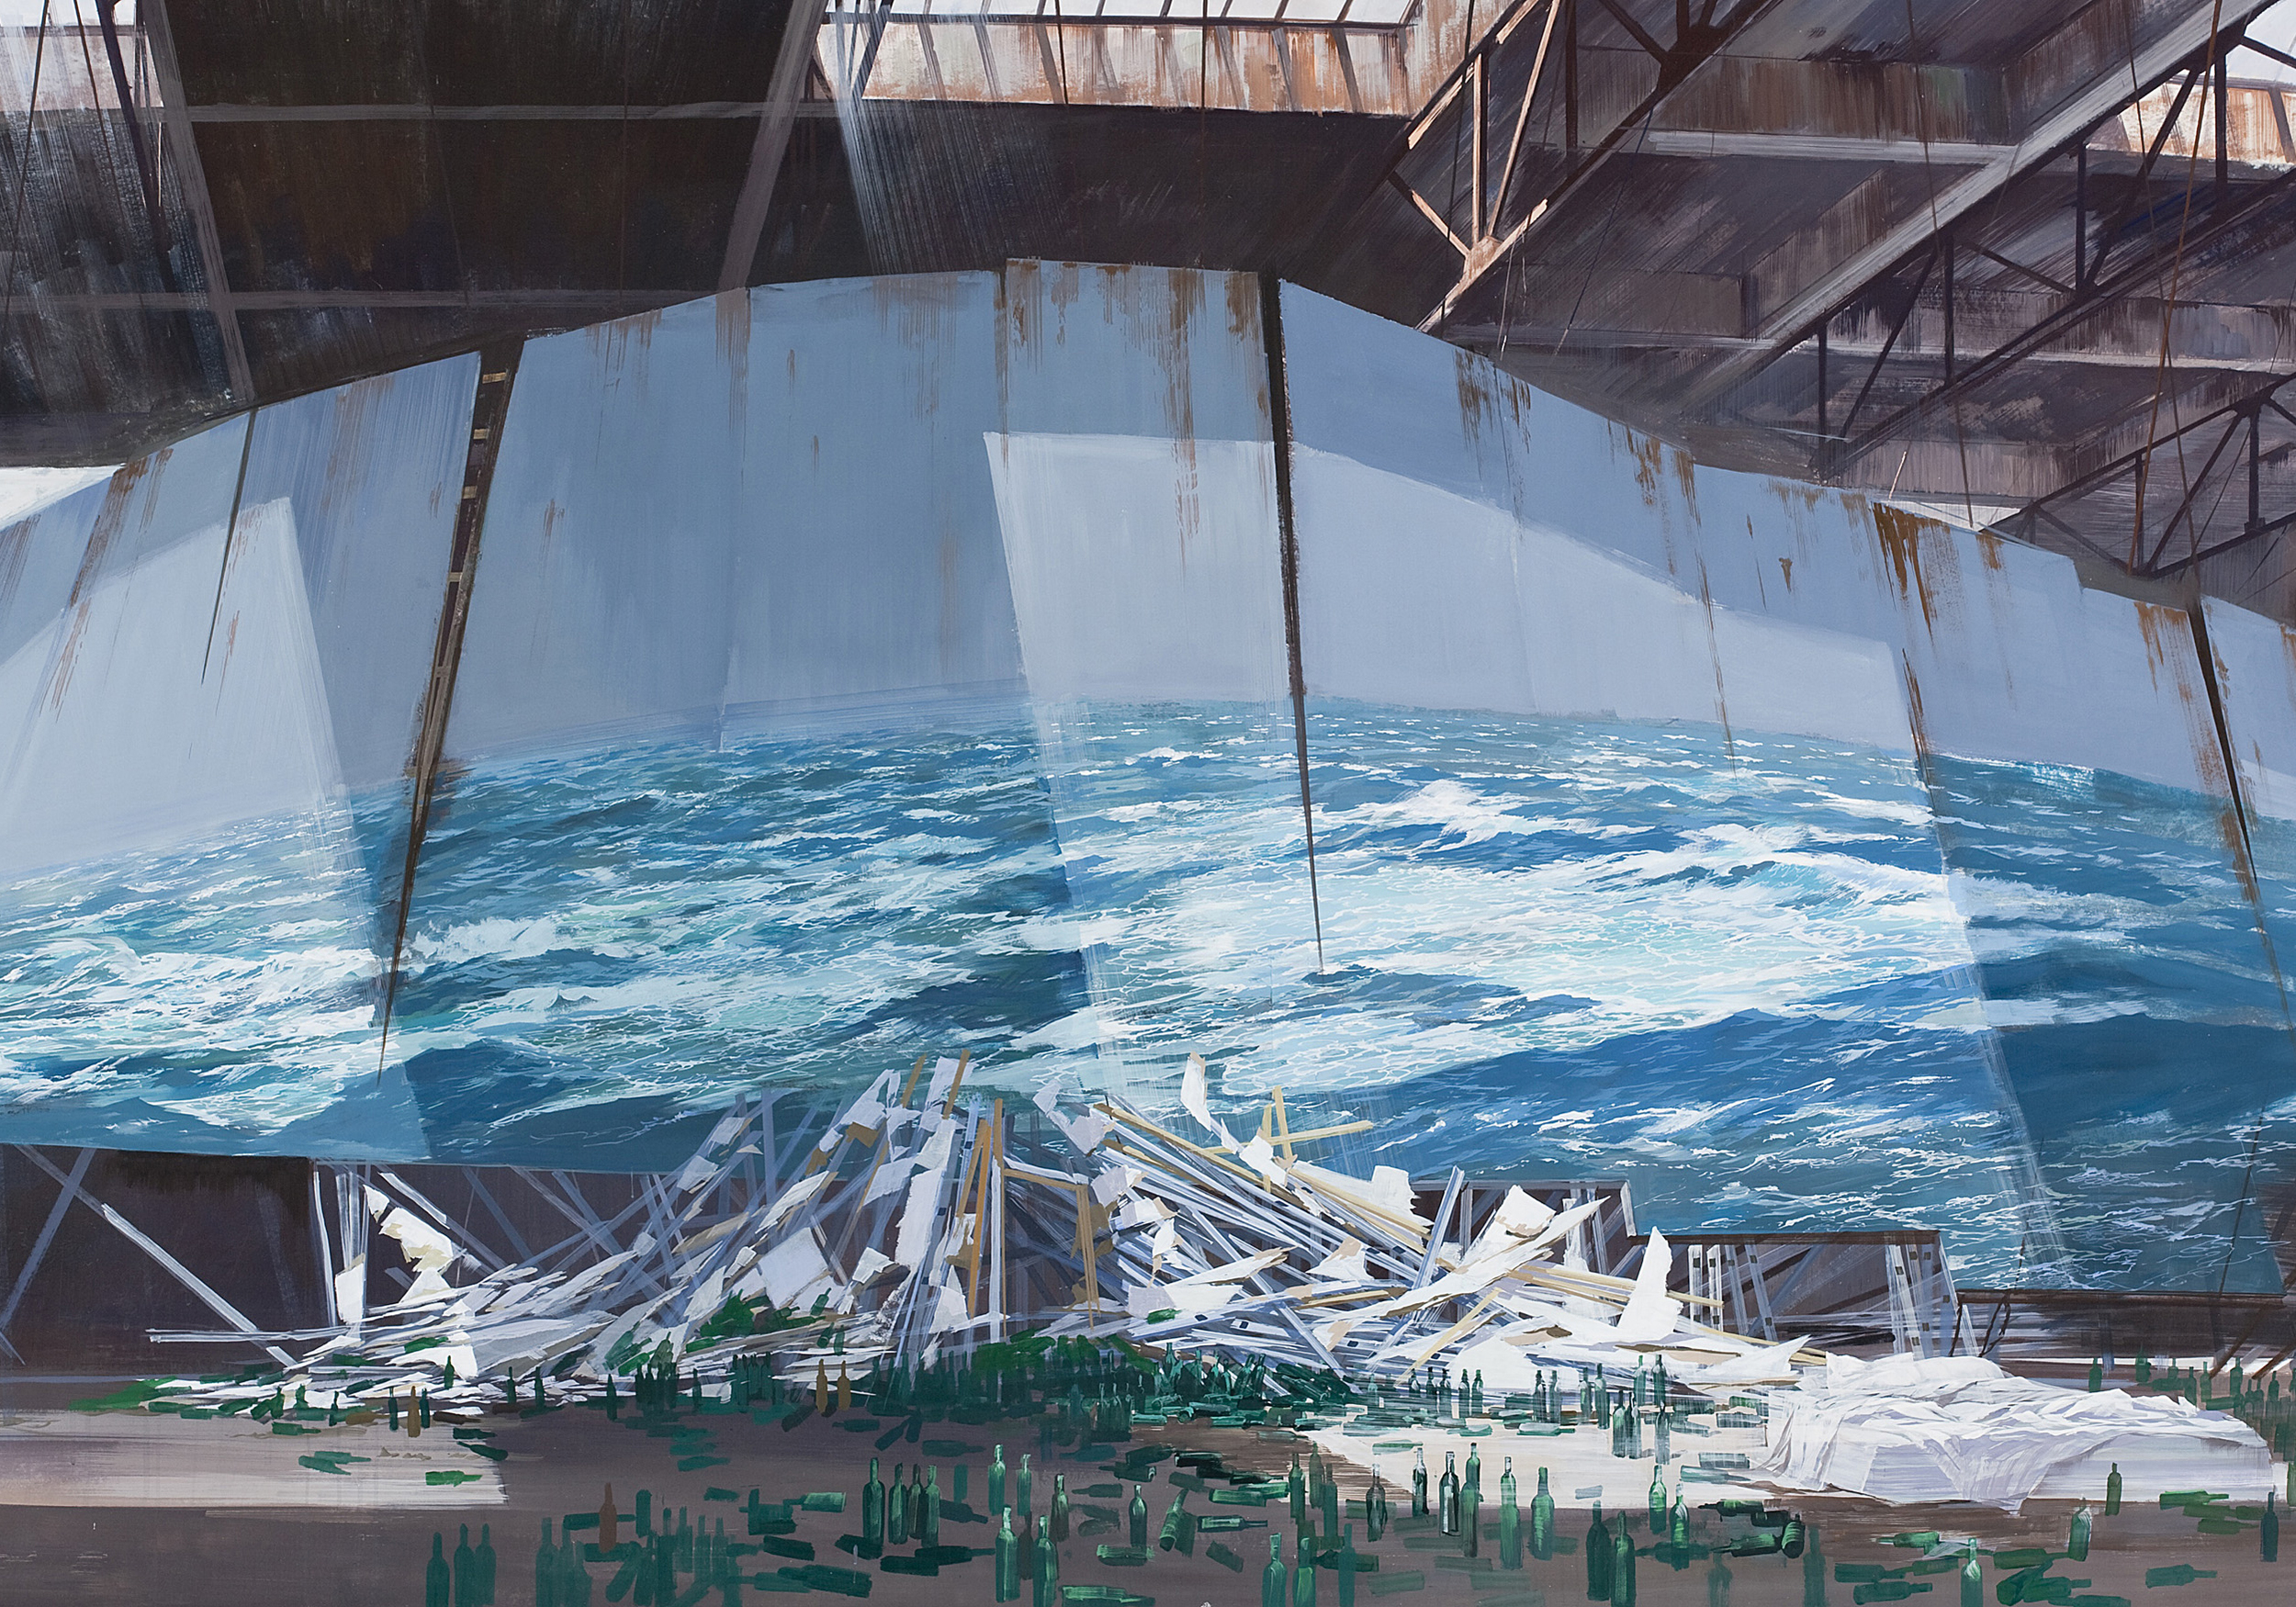 Adam Cvijanovic,  All the Wine I Ever Drank I Drank at Sea , 2010,acrylic on Tyvek [on panel],48 x 96 inches, Courtesy of Art Pension Trust and Postmasters Gallery, New York, image courtesy of the artist and Postmasters Gallery, New York